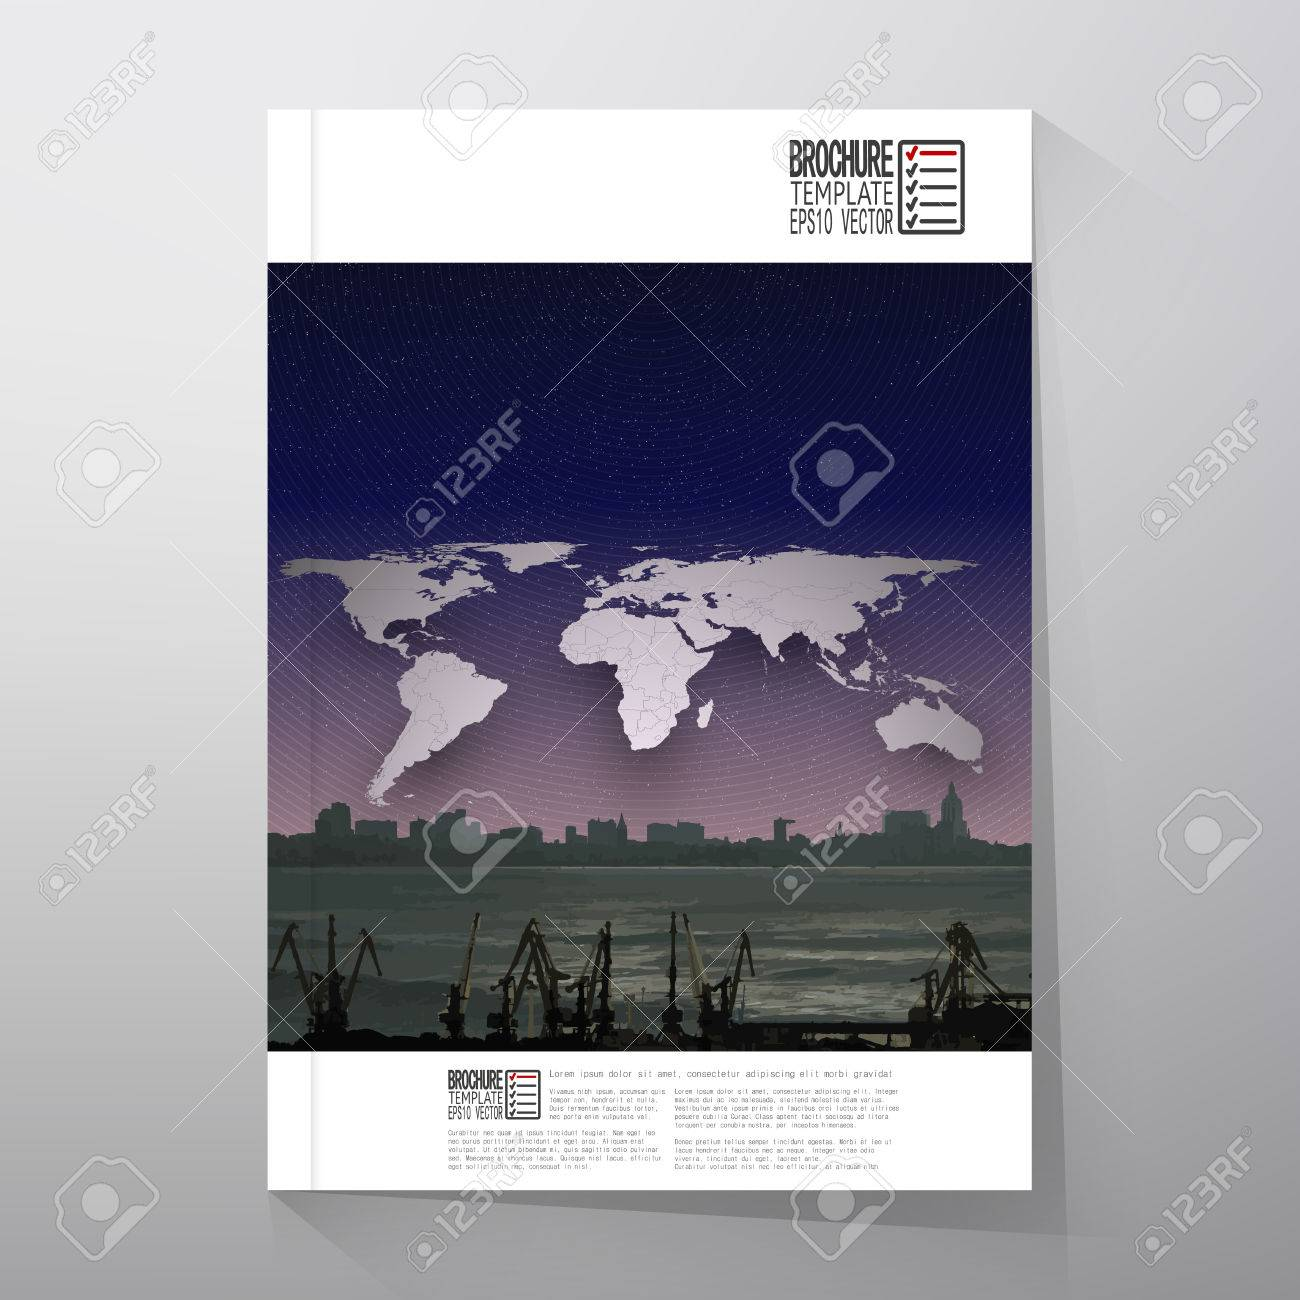 Shipyard and city landscape world map night design vector brochure shipyard and city landscape world map night design vector brochure flyer or report gumiabroncs Images